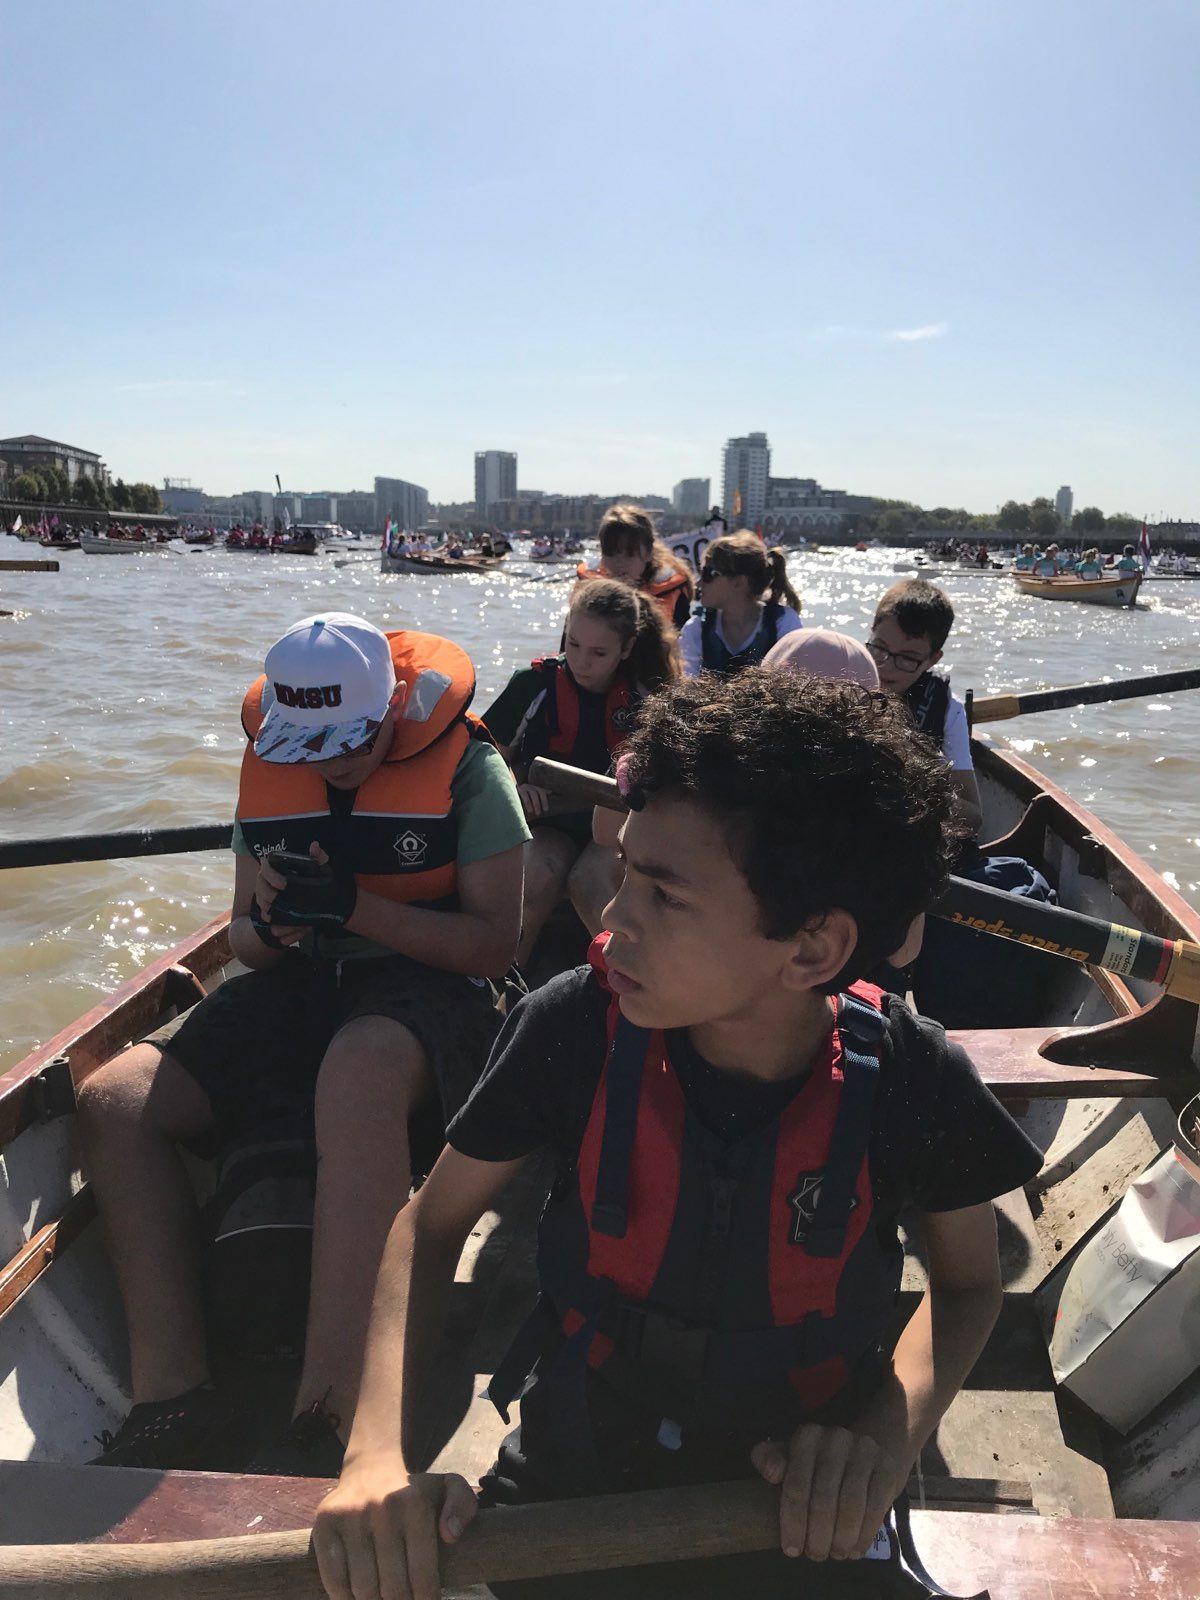 Animal Crew in Great River Race